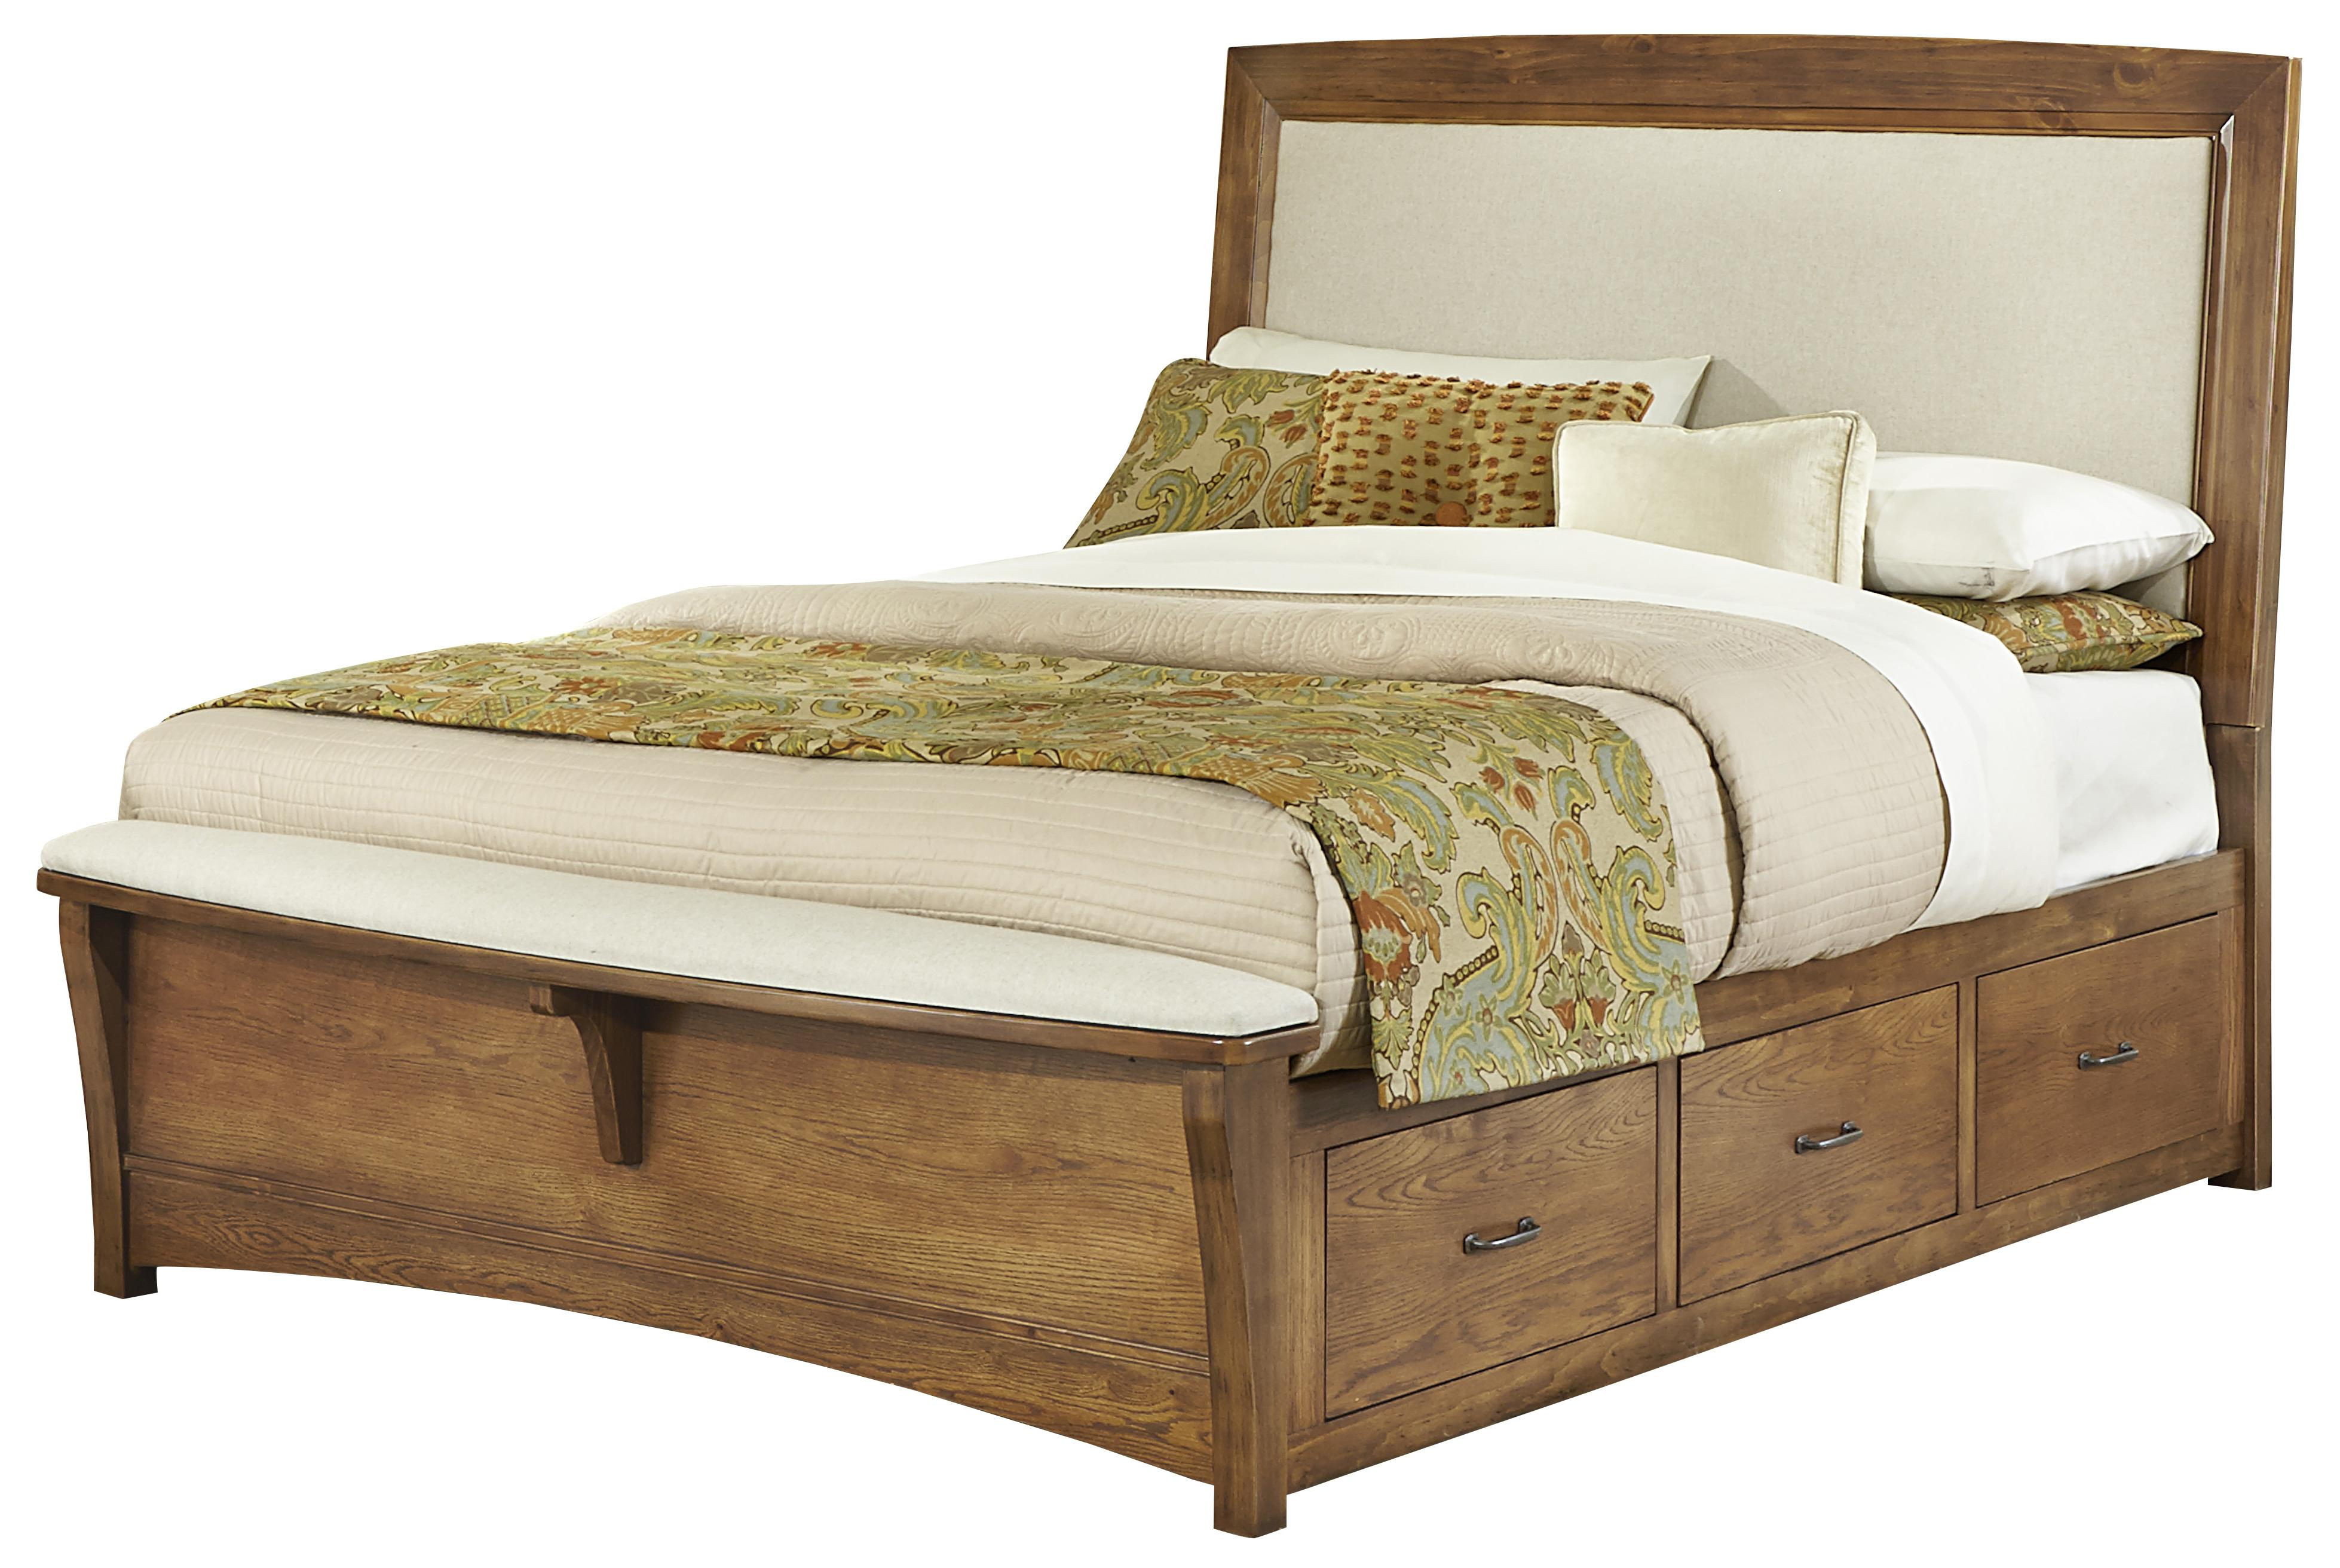 Vaughan Bassett Transitions King Upholstered Bed with 1 Side Storage - Item Number: BB63-669+966+082B+082C+082D+666T